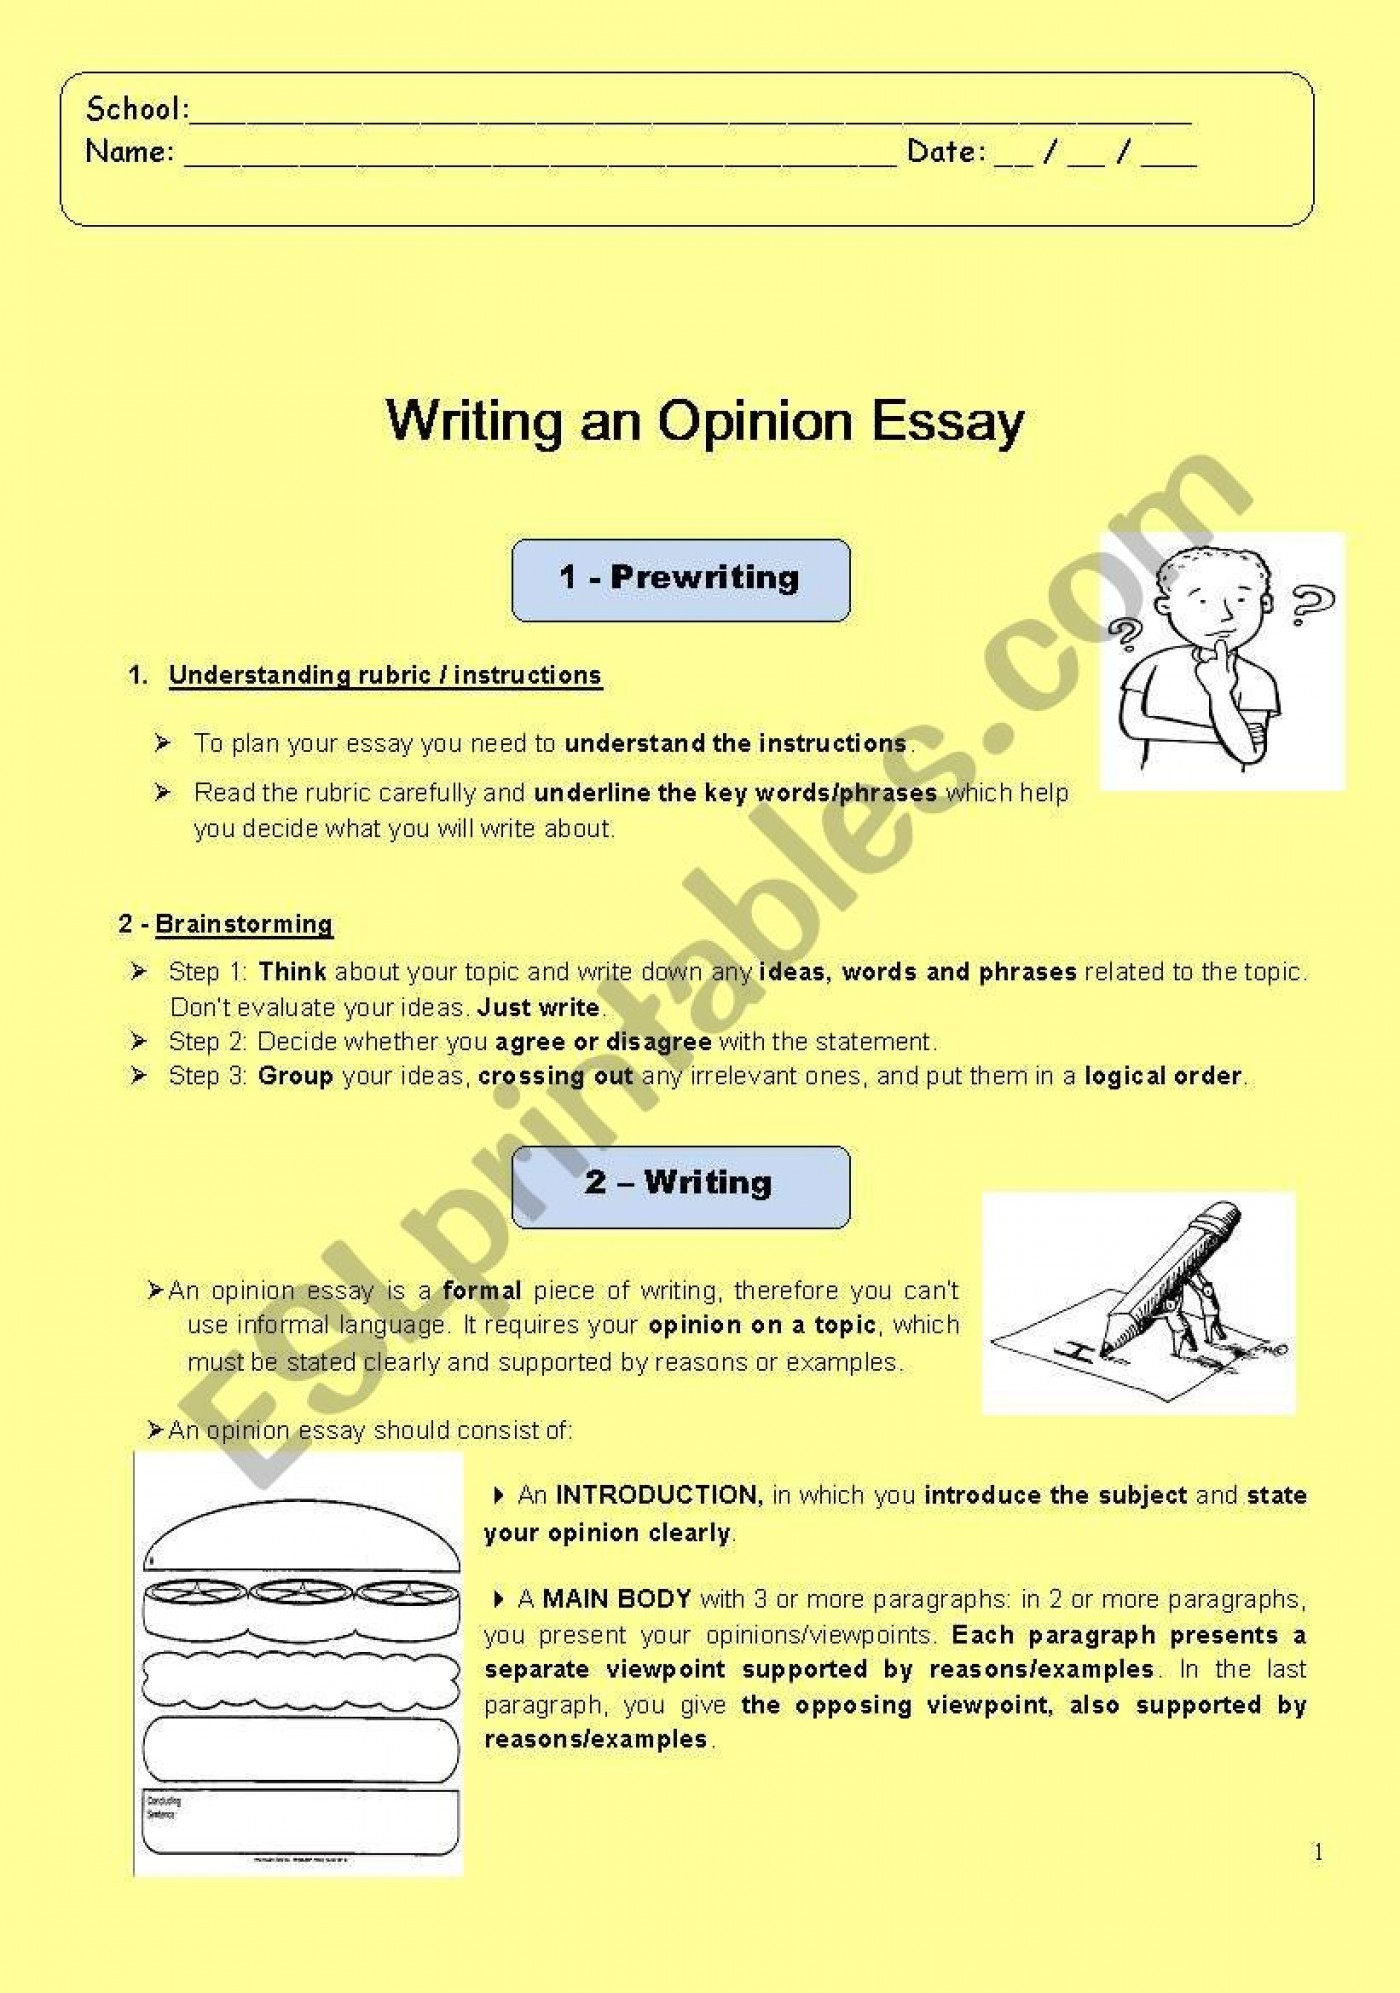 014 How To Write An Opinion Essay 519469 1 Unbelievable 3rd Grade College 1400